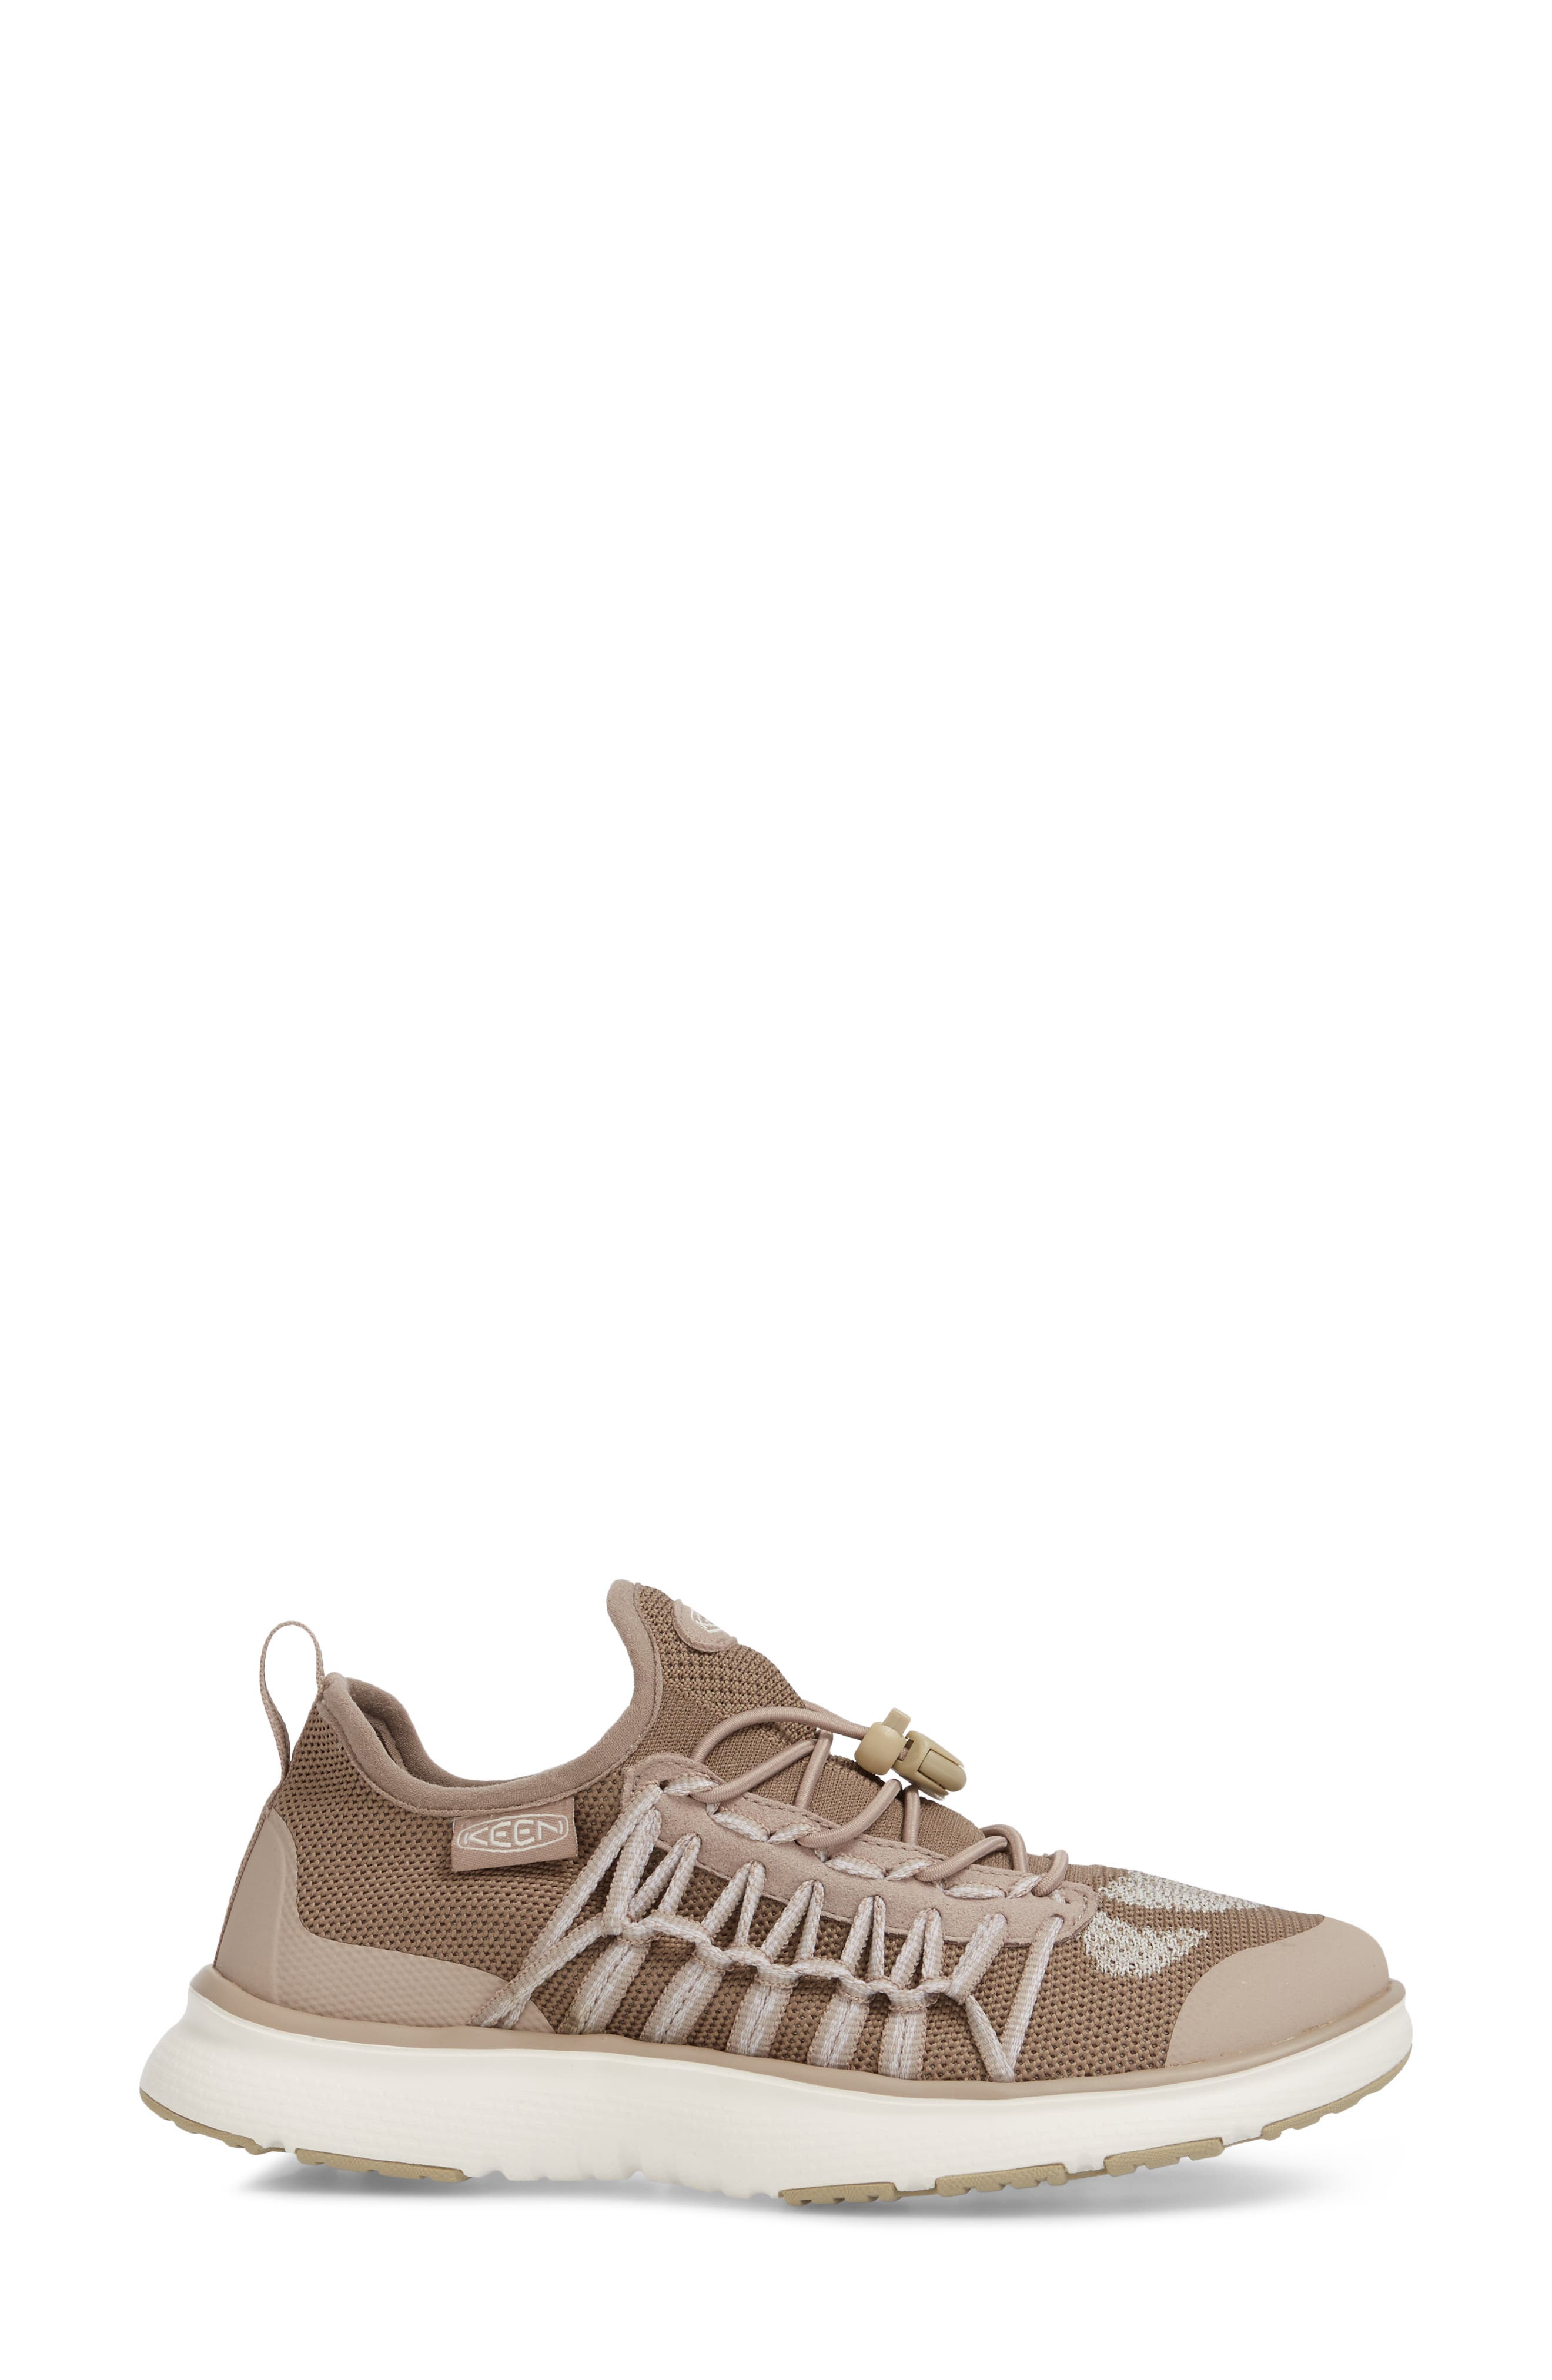 Uneek Exo Water Sneaker,                             Alternate thumbnail 3, color,                             Plaza Taupe